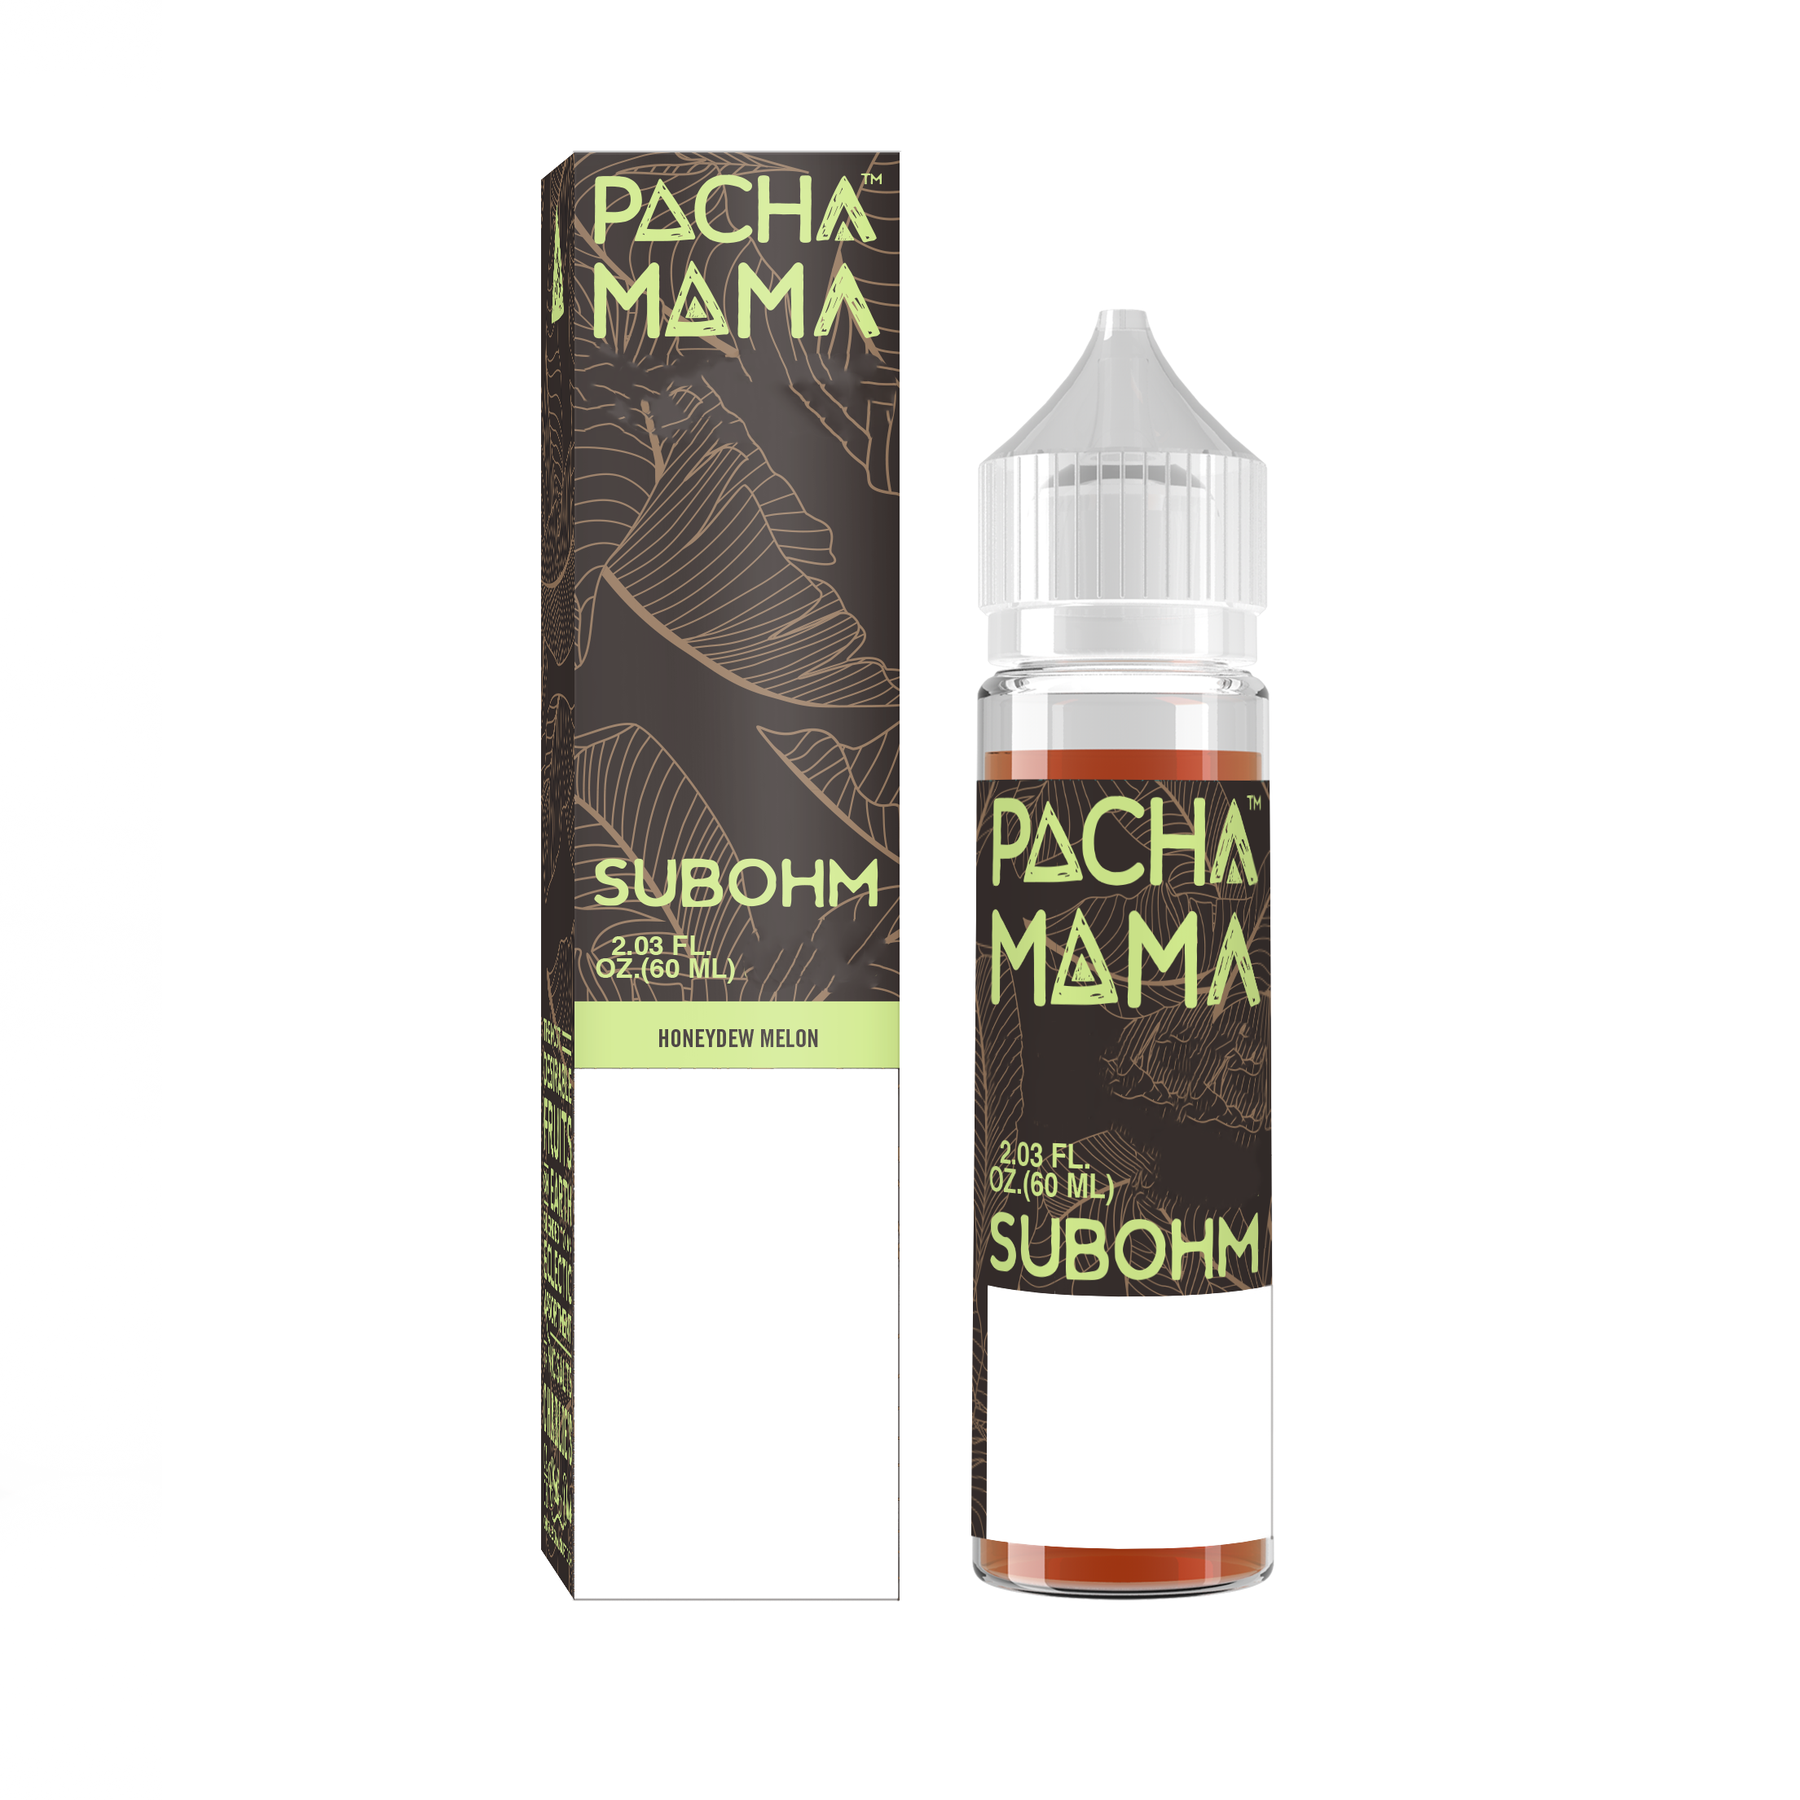 Charlies Chalk - Pacha Mama - Sub-Ohm -  Honeydew Melon (60mls ready to vape) | MorningtonVapes